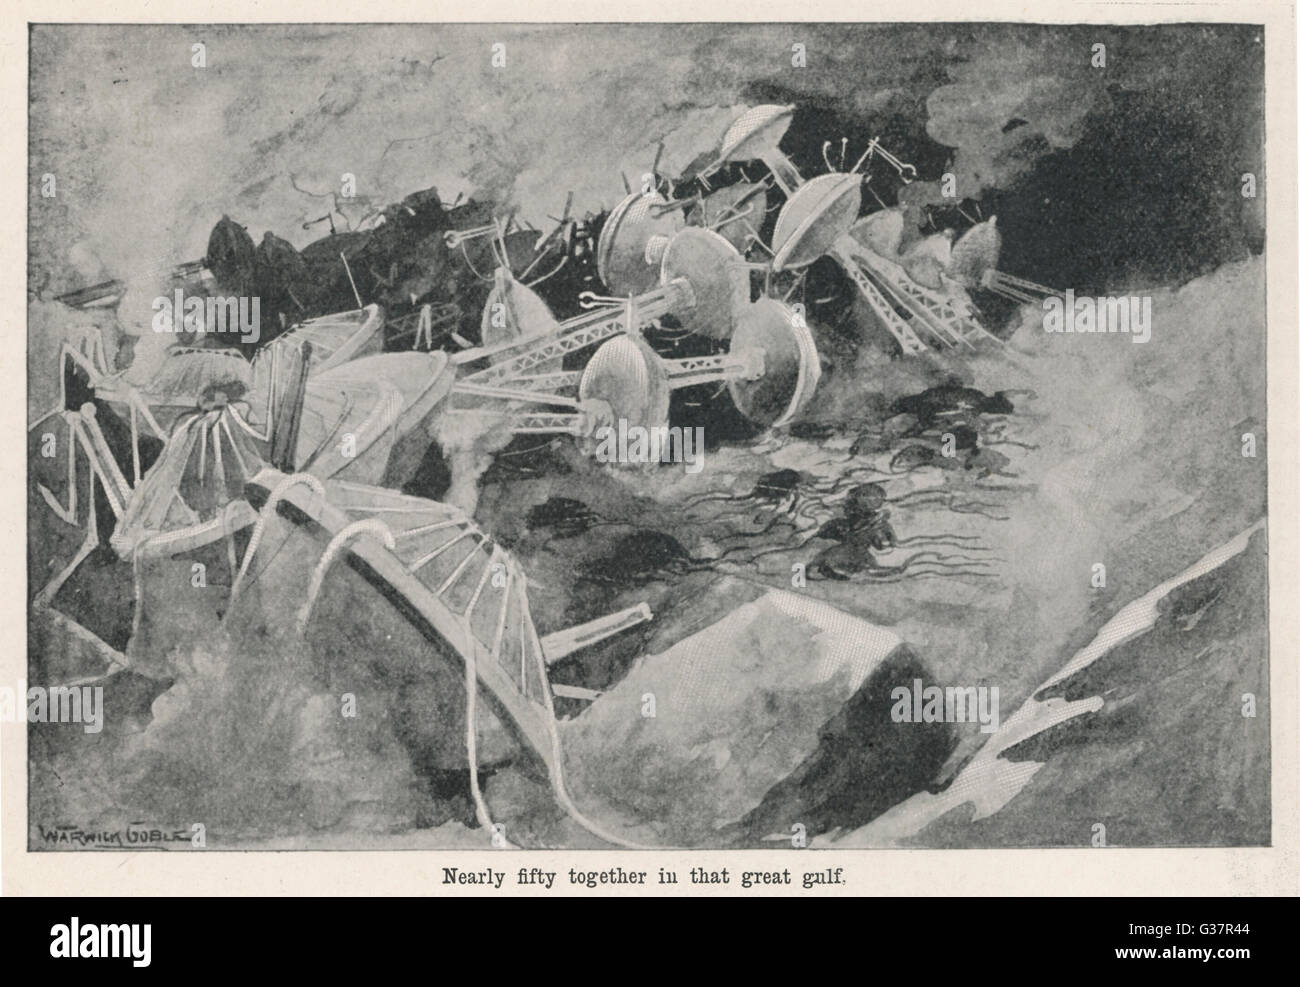 'THE WAR OF THE WORLDS'  The end of the Martian  invasion       Date: 1897 - Stock Image